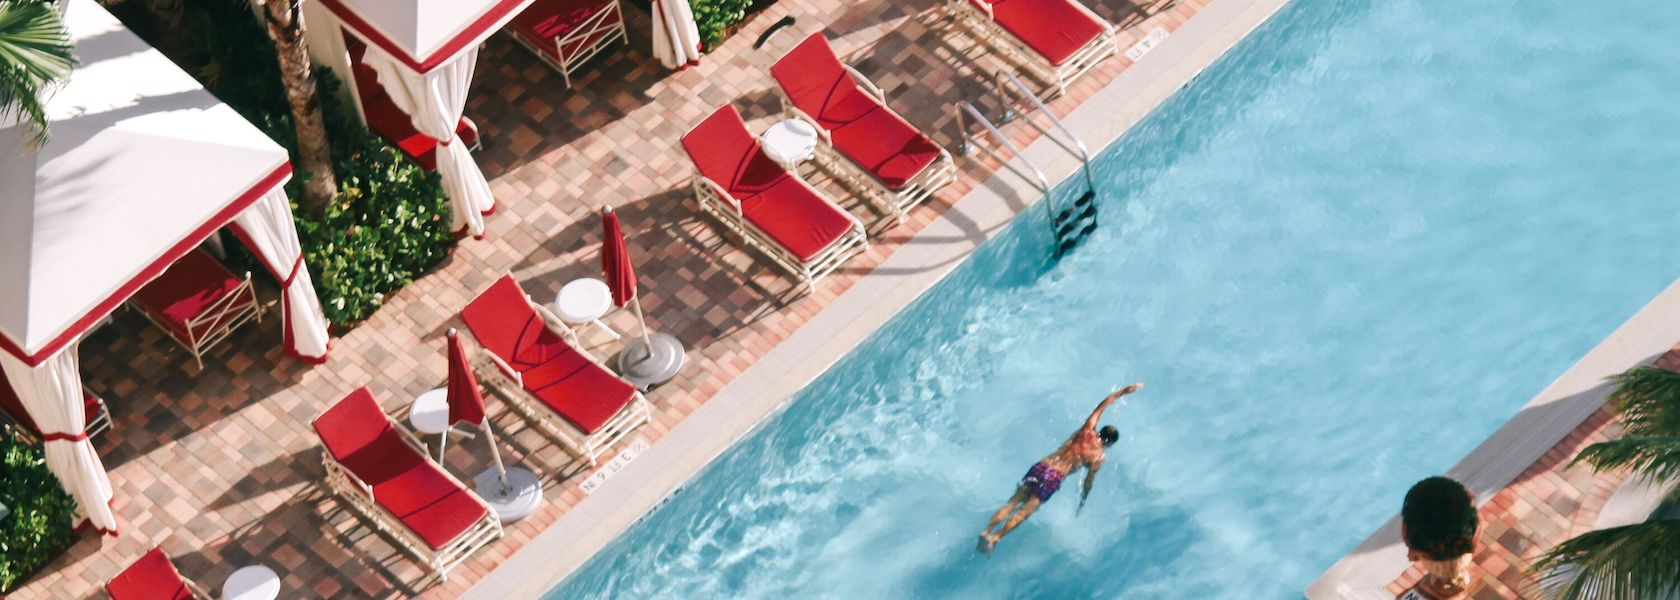 Man swimming in lap pool next to red lounge chairs at Acqualina Resort & Spa